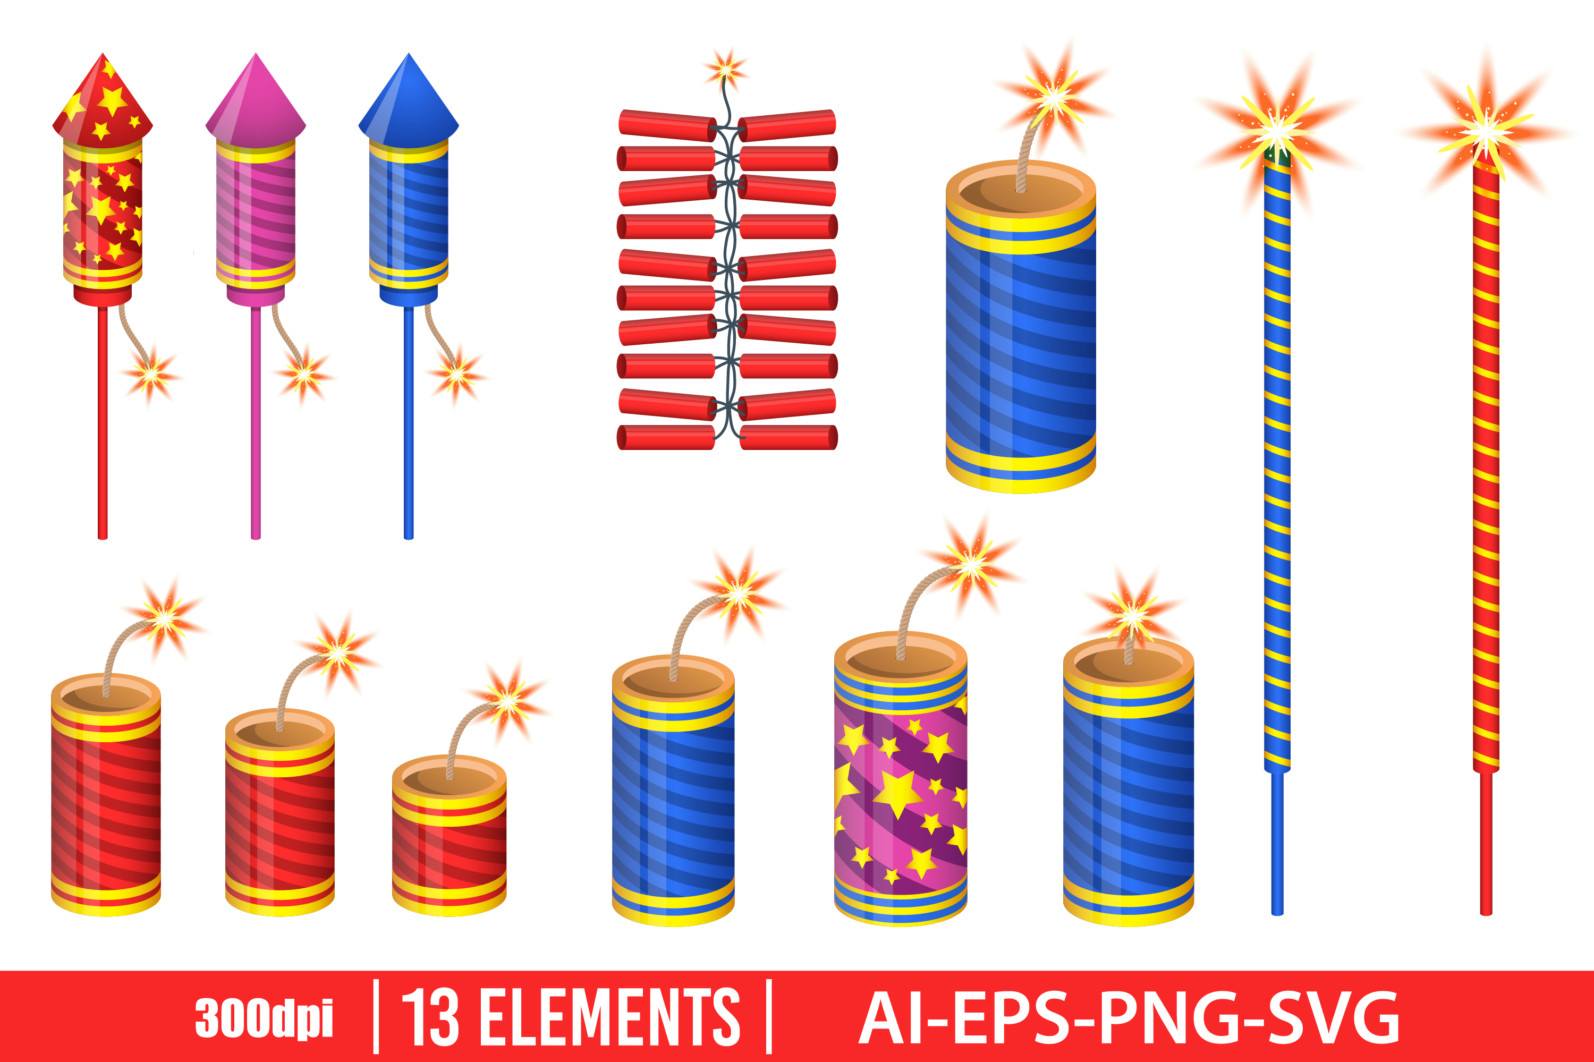 Firecrackers clipart vector design illustration. Firecrackers set. Vector Clipart Print - FIRE CRACKERS scaled -